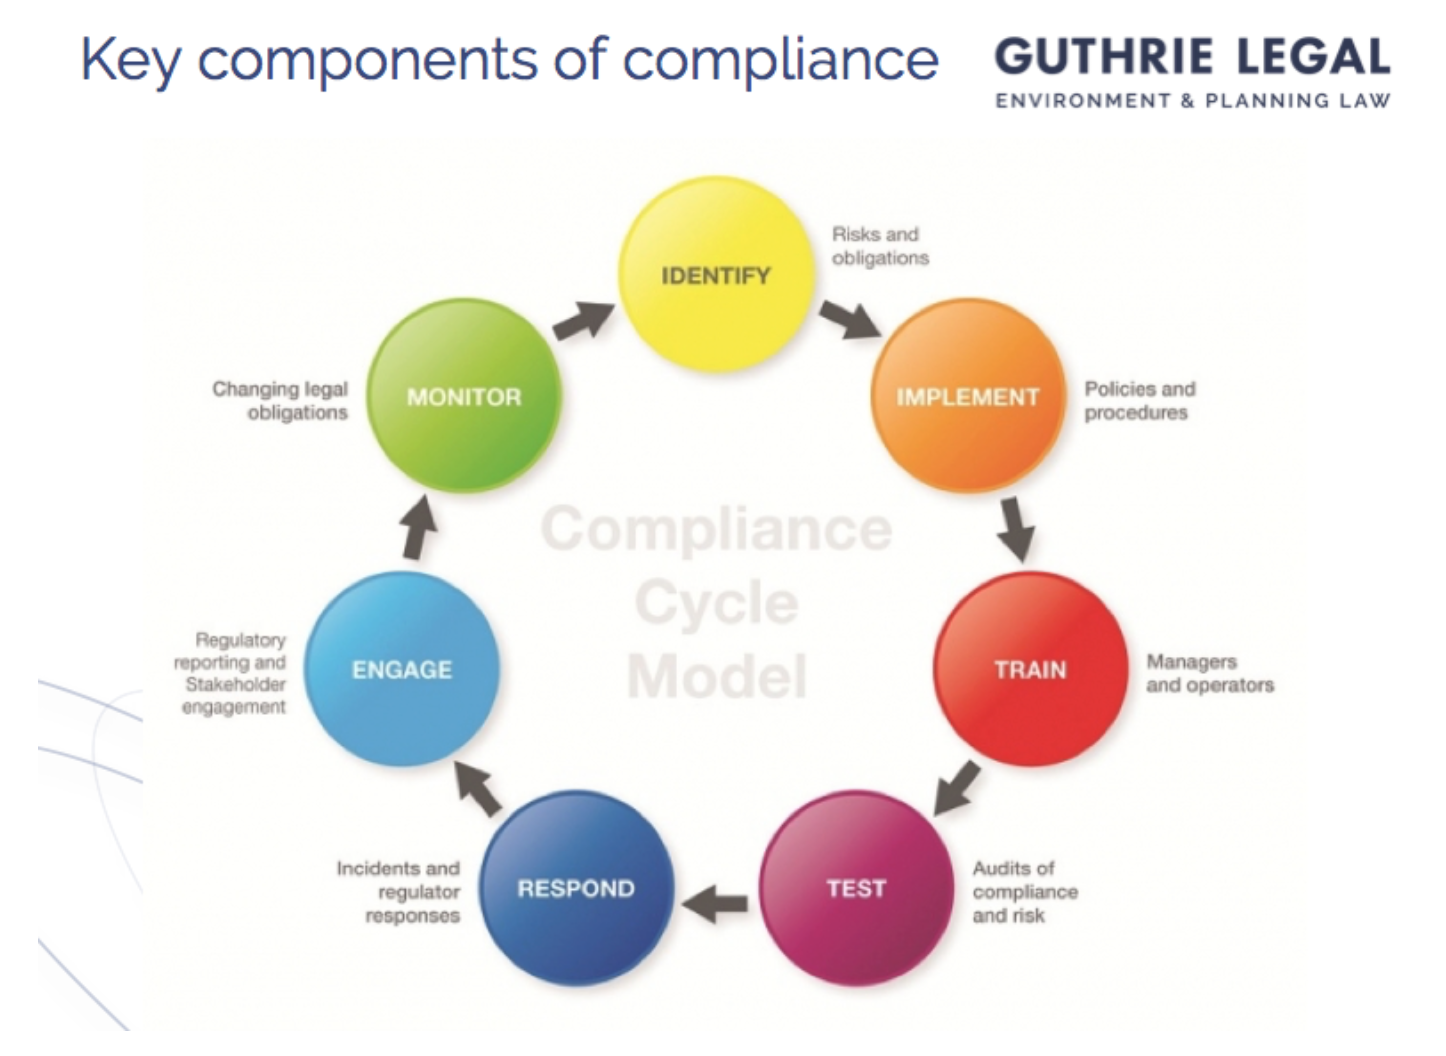 Governance and compliance essentials